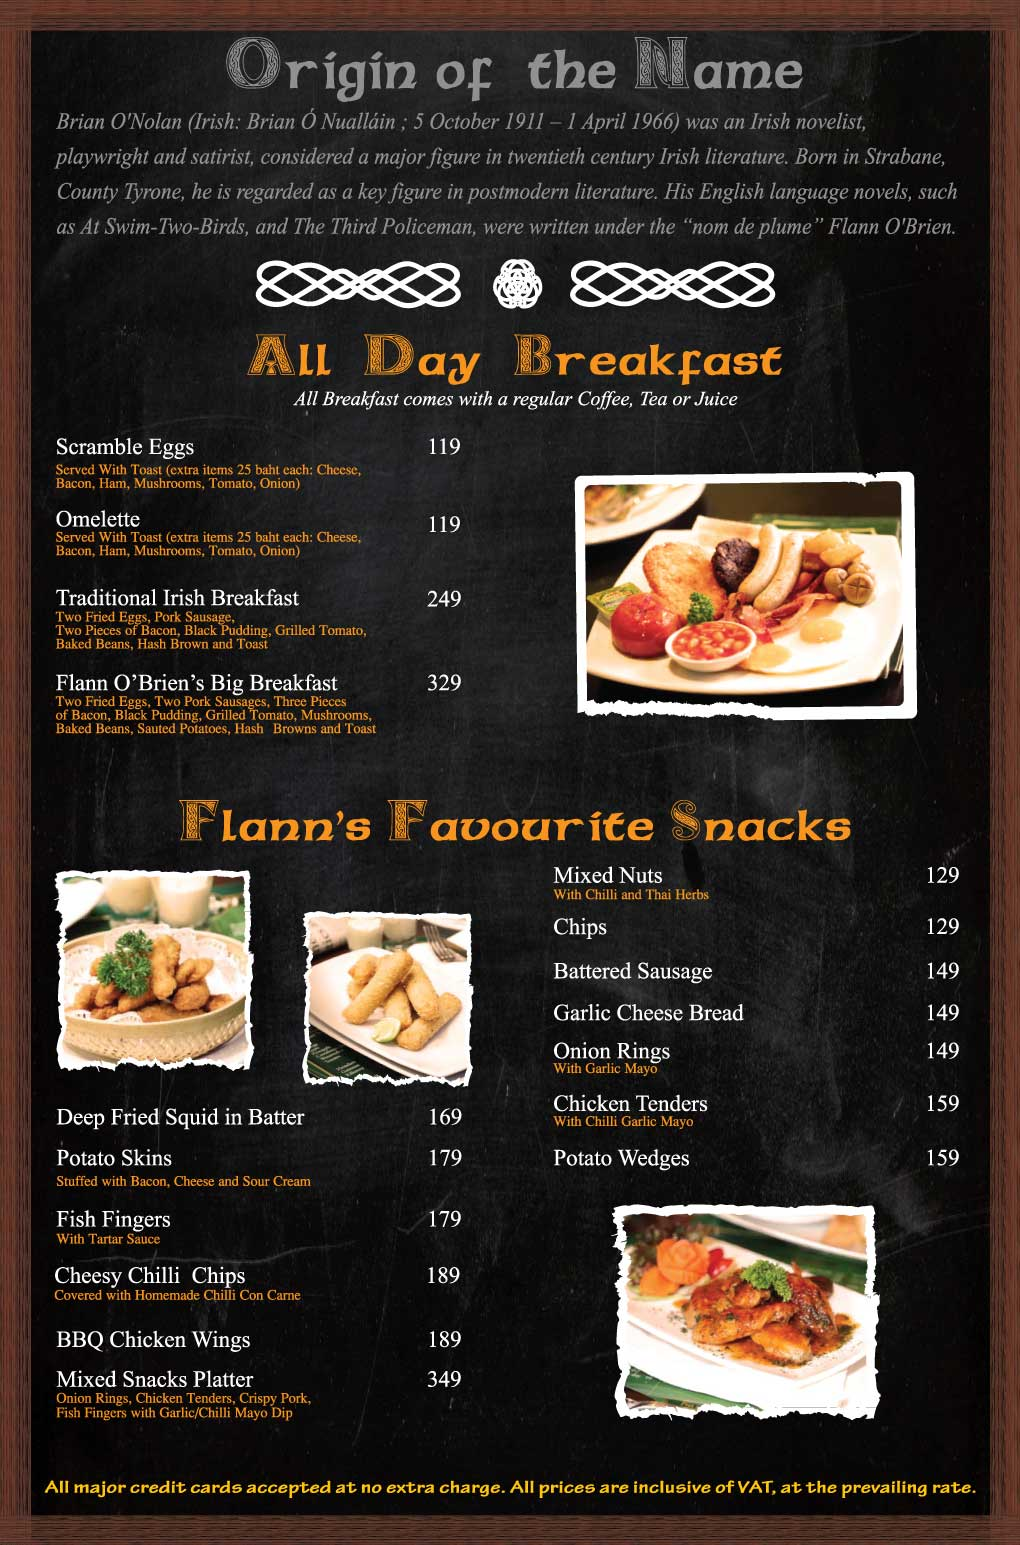 Flann Asiatique Food Menu Breakfast and Snacks